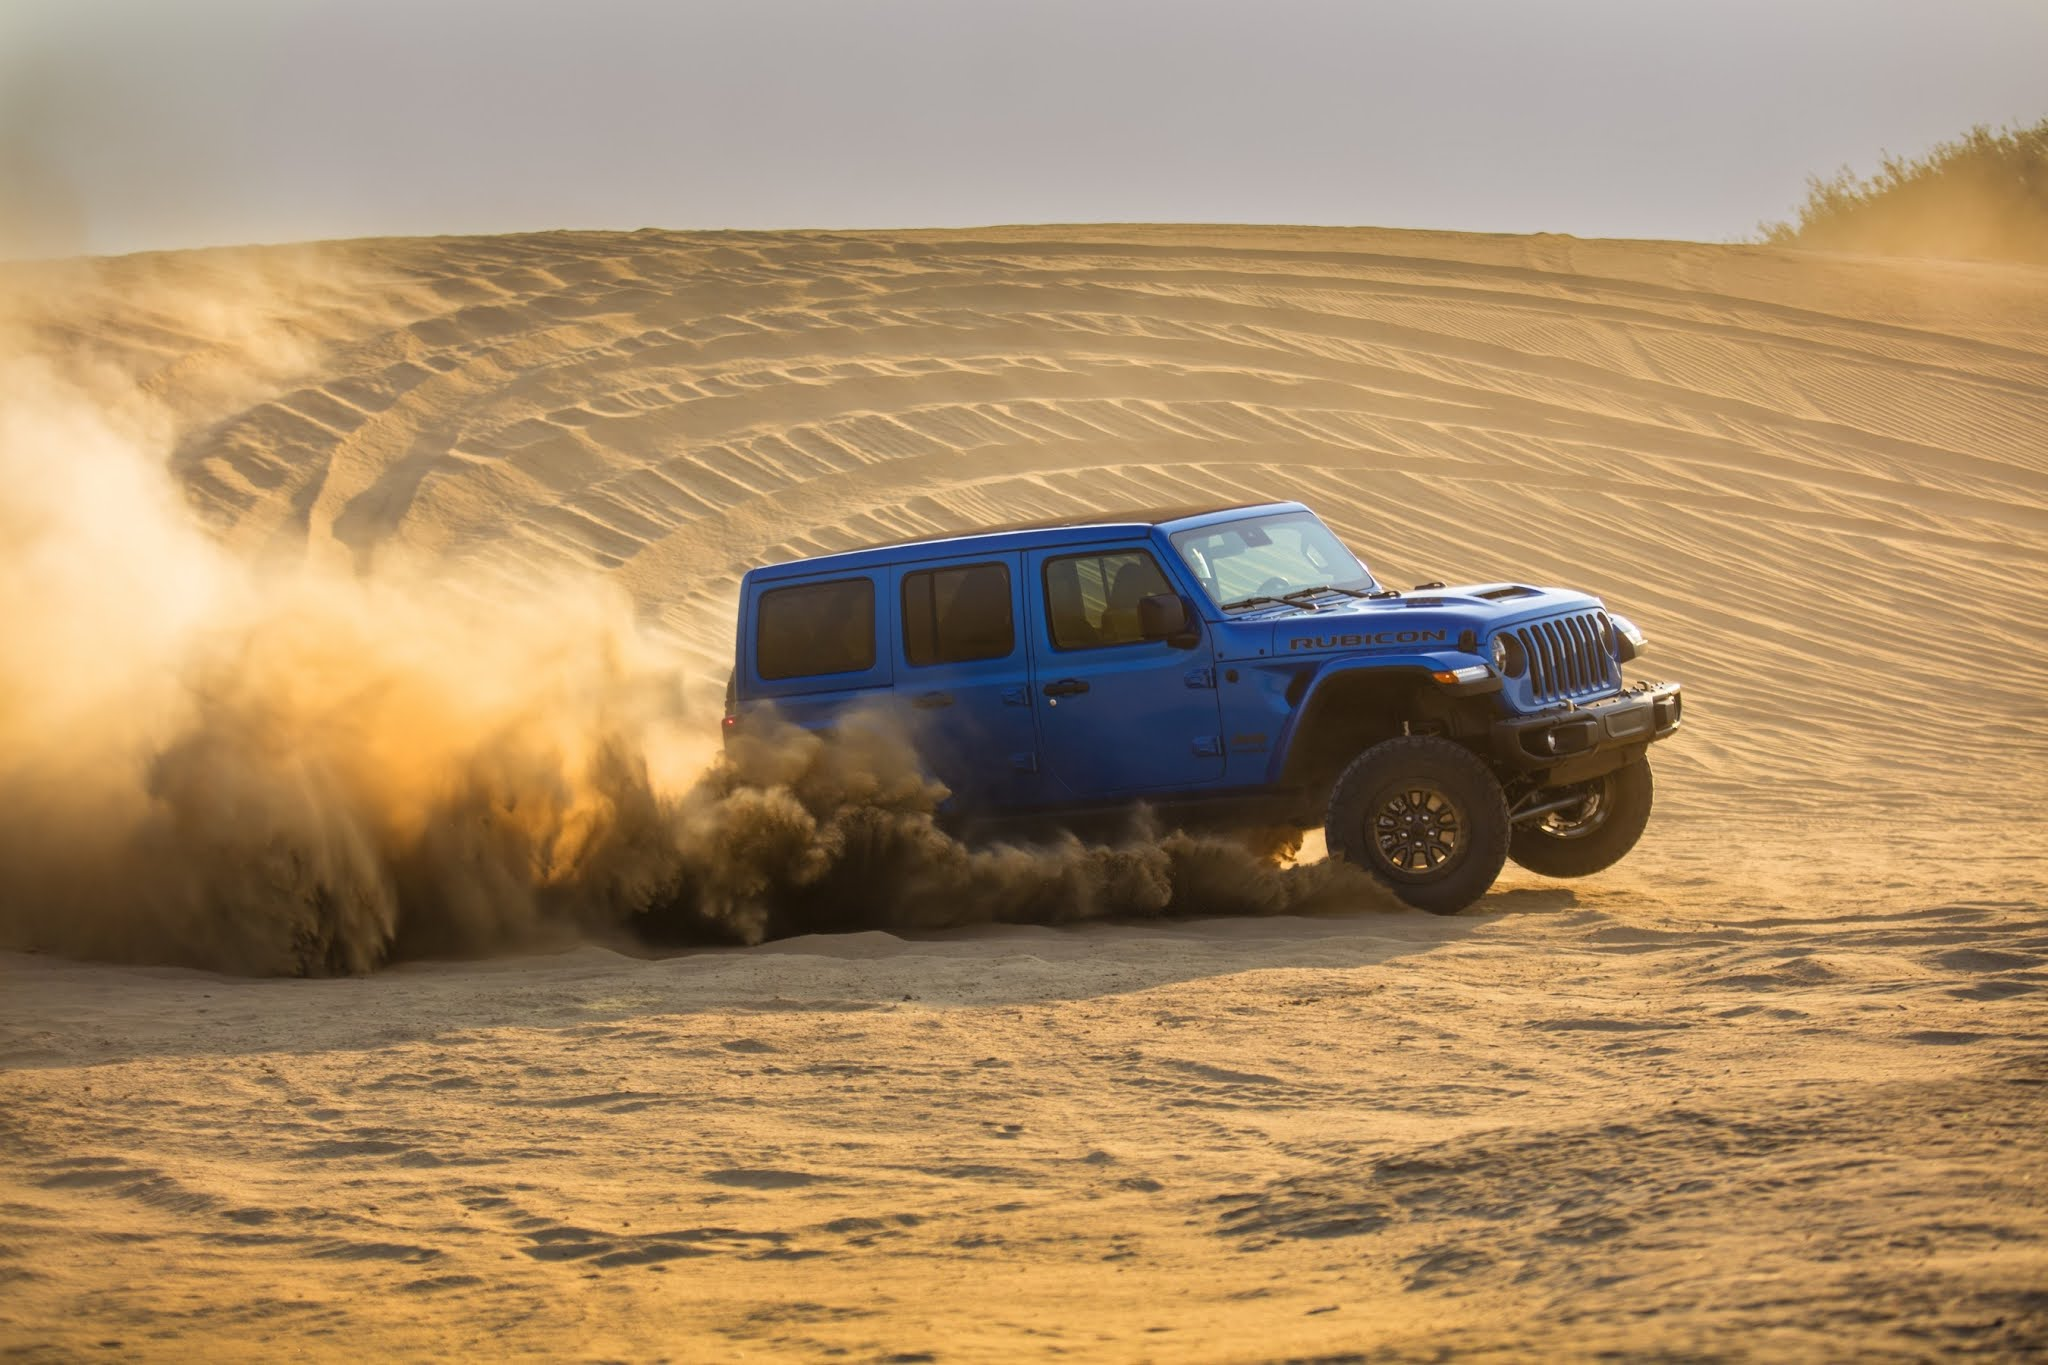 New 2021 Jeep Wrangler Rubicon 392 Combines Legendary 4x4 Capability With 470-horsepower V-8 Engine for the Most Capable Wrangler Yet